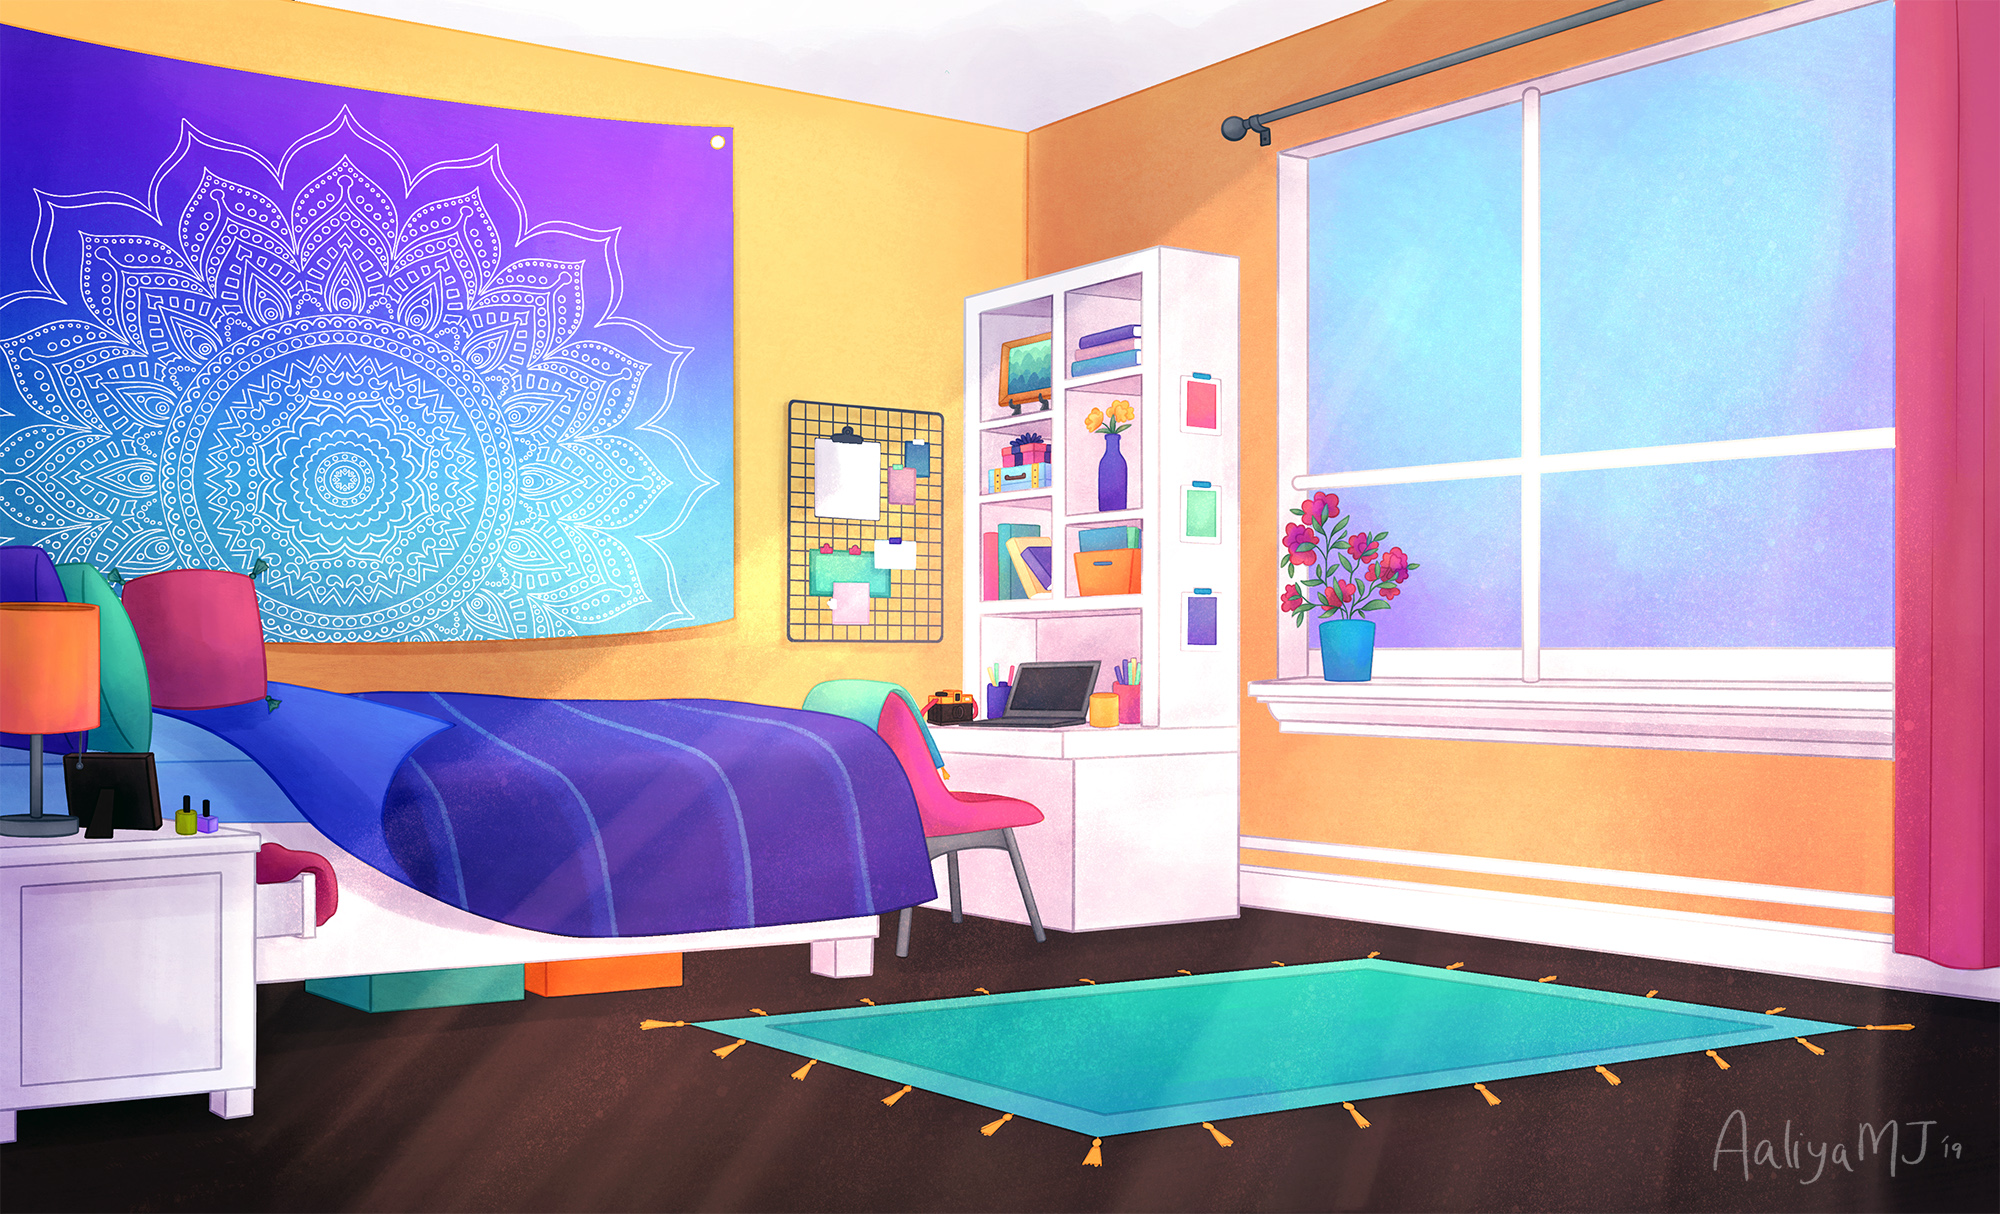 Jenna's_Bedroom_Color.jpg